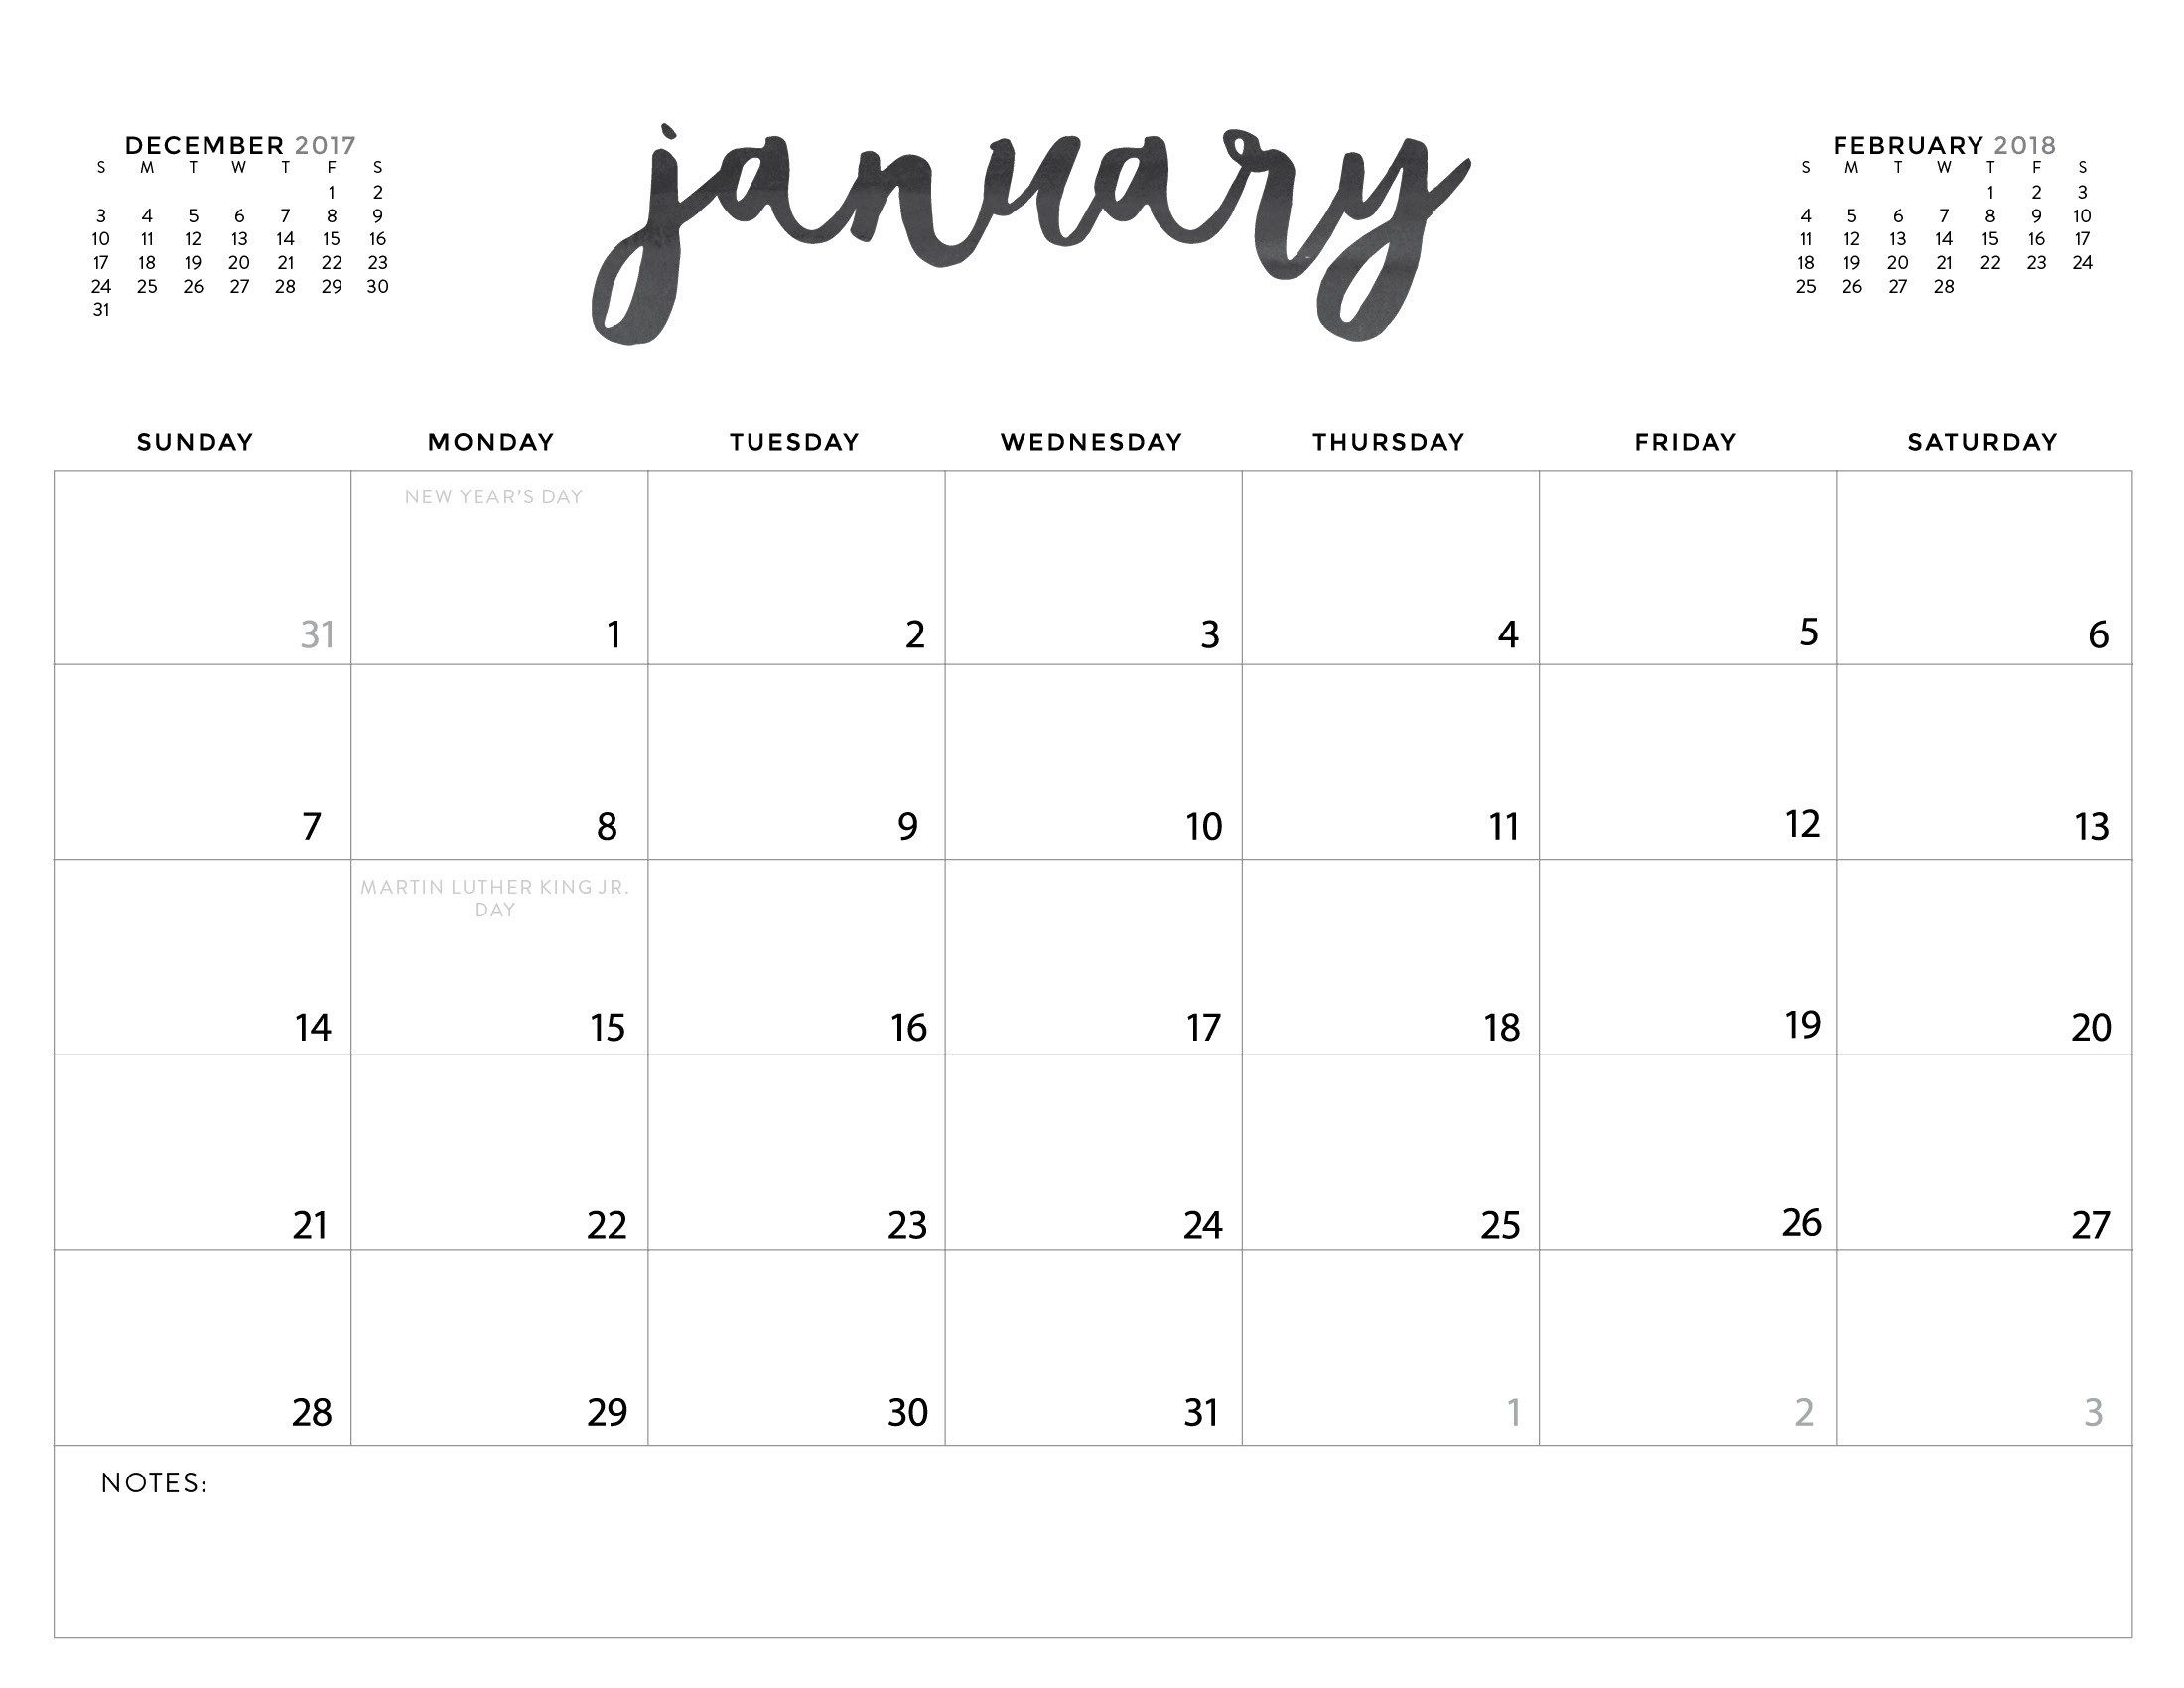 Download Your Free 2018 Printable Calendars Today! 28 Calender To Print With Monday Start Date